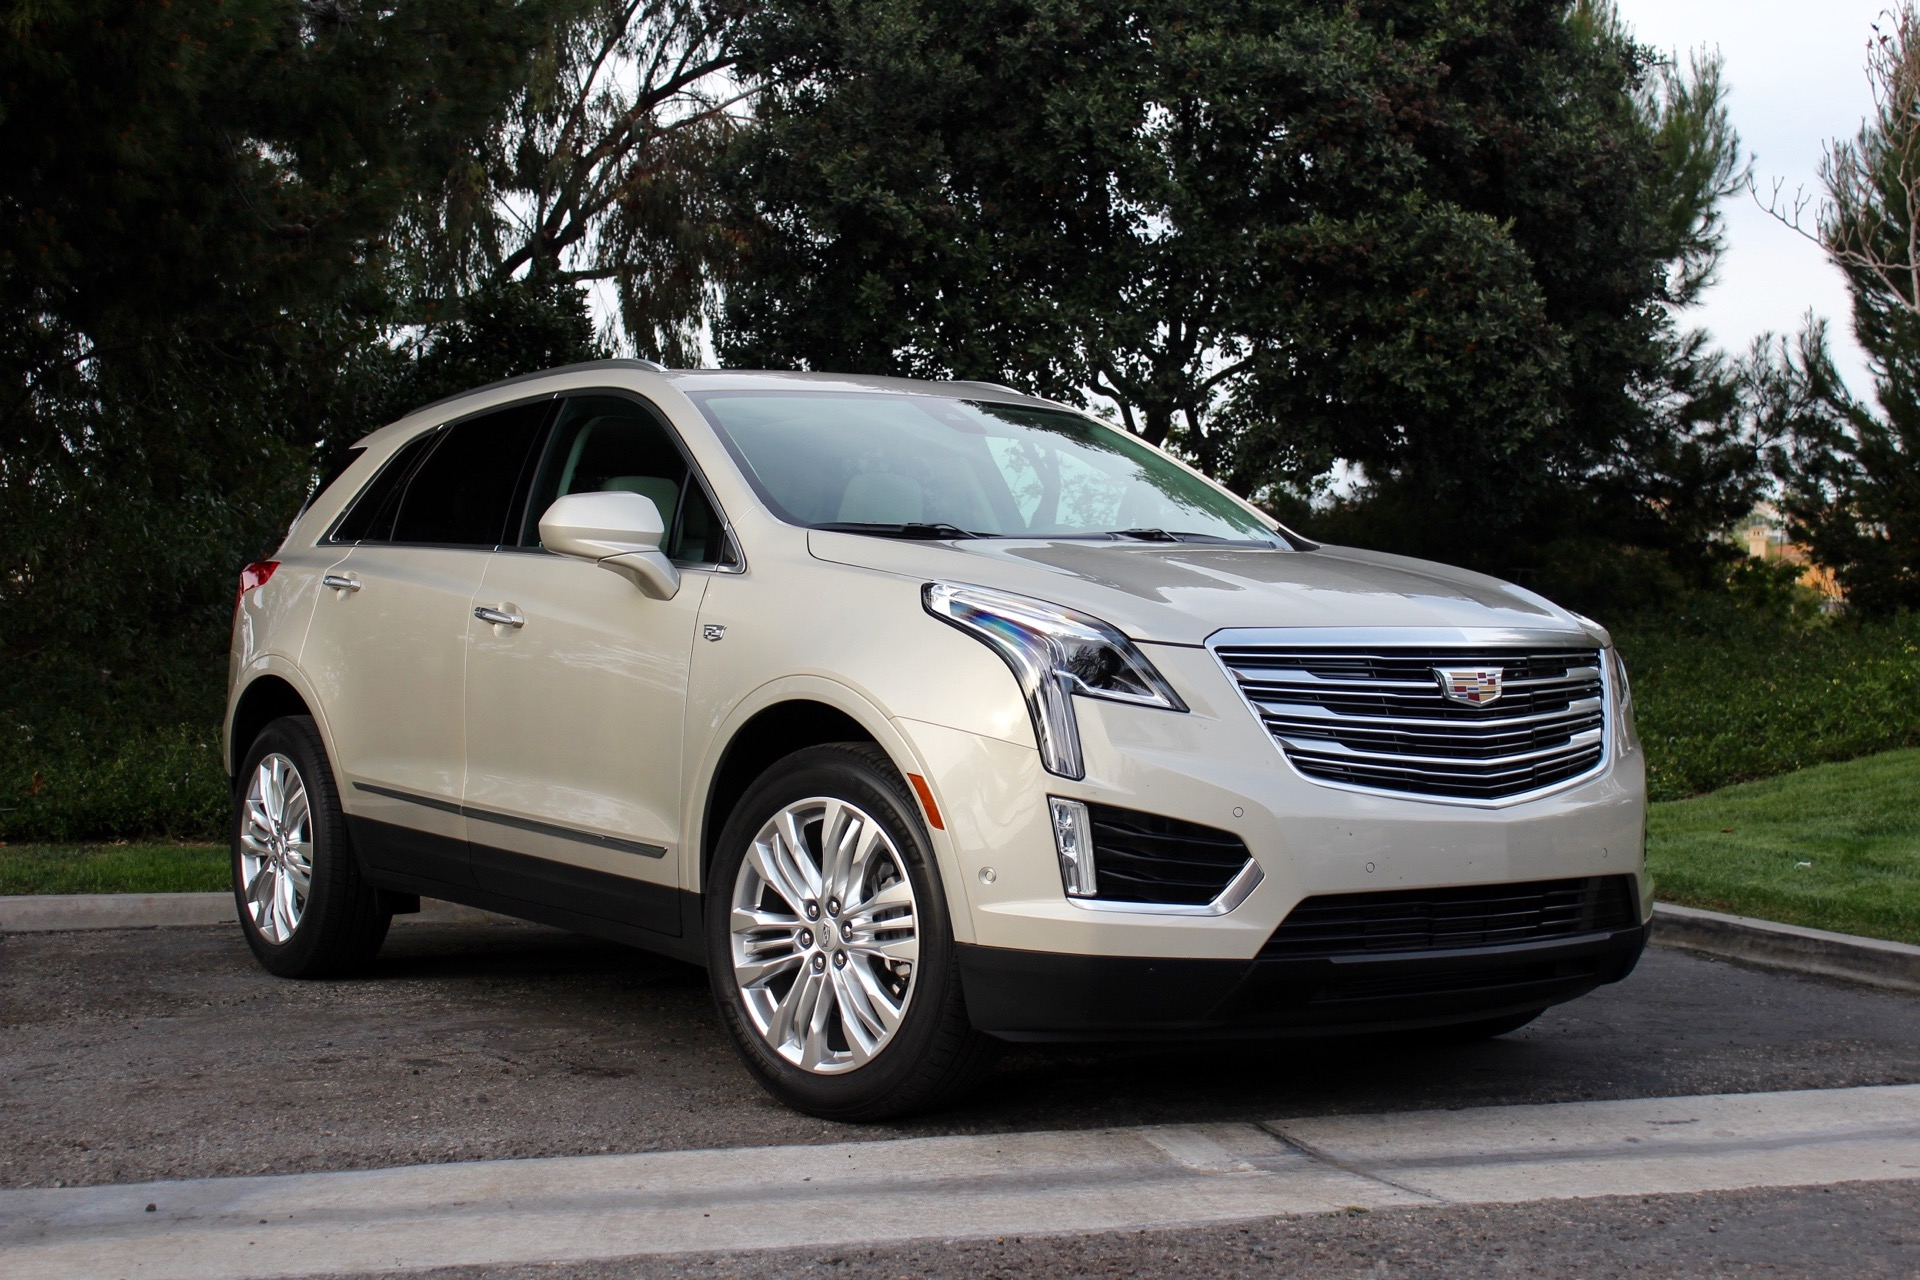 3rd Row Suv For Sale >> Cadillac Three Row Crossover Coming With Stretched Version Of Xt5